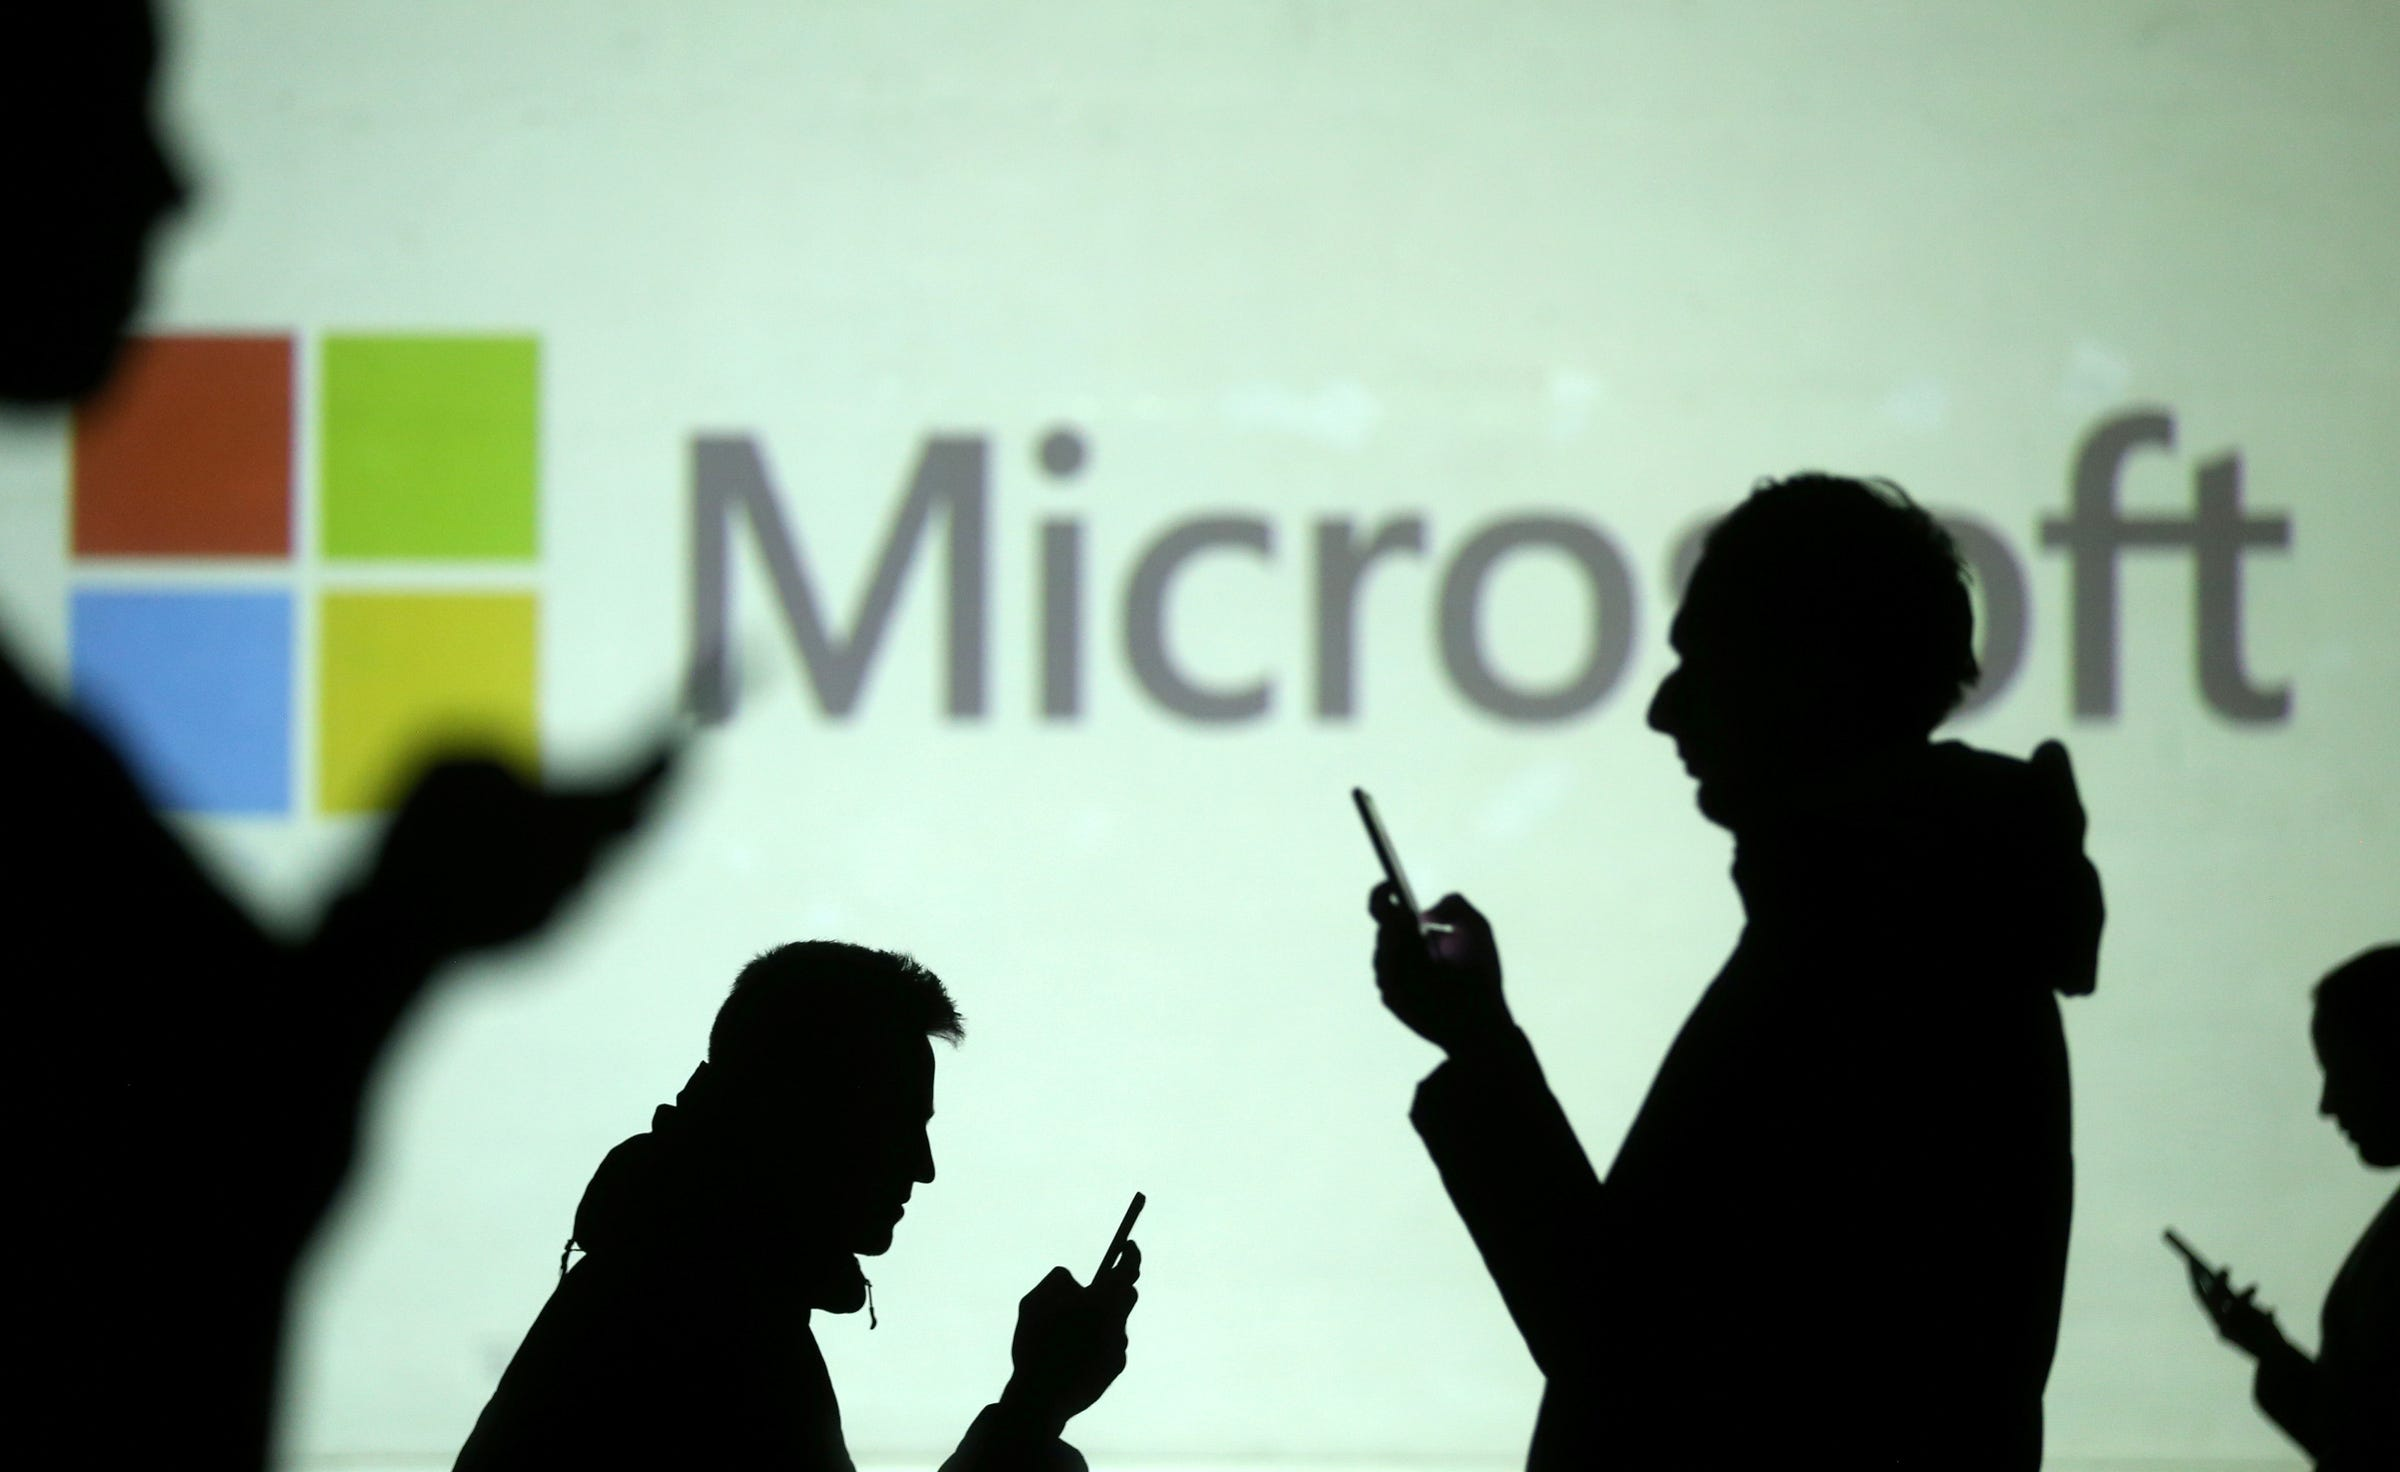 FILE PHOTO: Silhouettes of mobile users are seen next to a screen projection of Microsoft logo in this picture illustration taken March 28, 2018. REUTERS/Dado Ruvic/Illustration